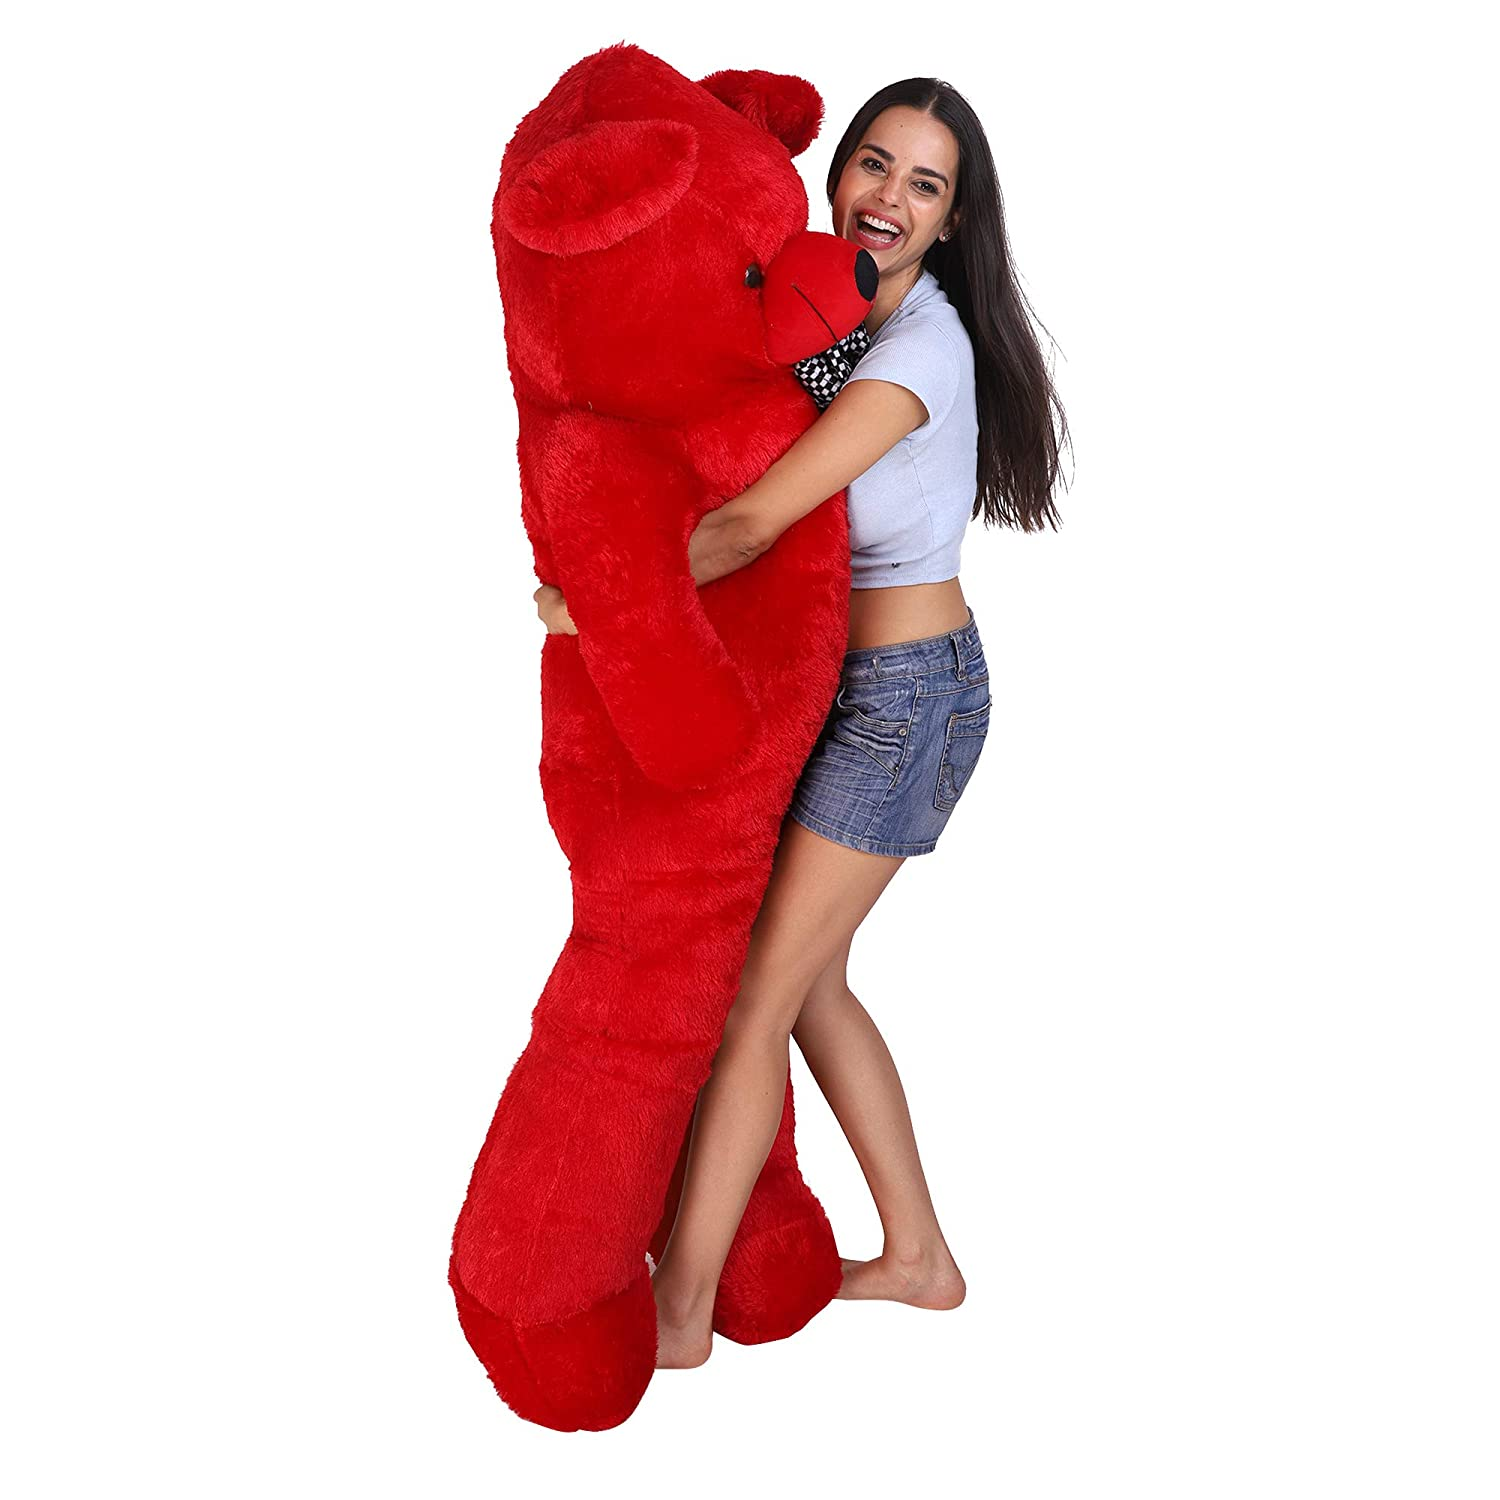 Red Teddy Bear 5 Feet, Buy Osjs Cute Teddy Bear With Neck Bow 5 Feet 152 Cm Red Online At Low Prices In India Amazon In